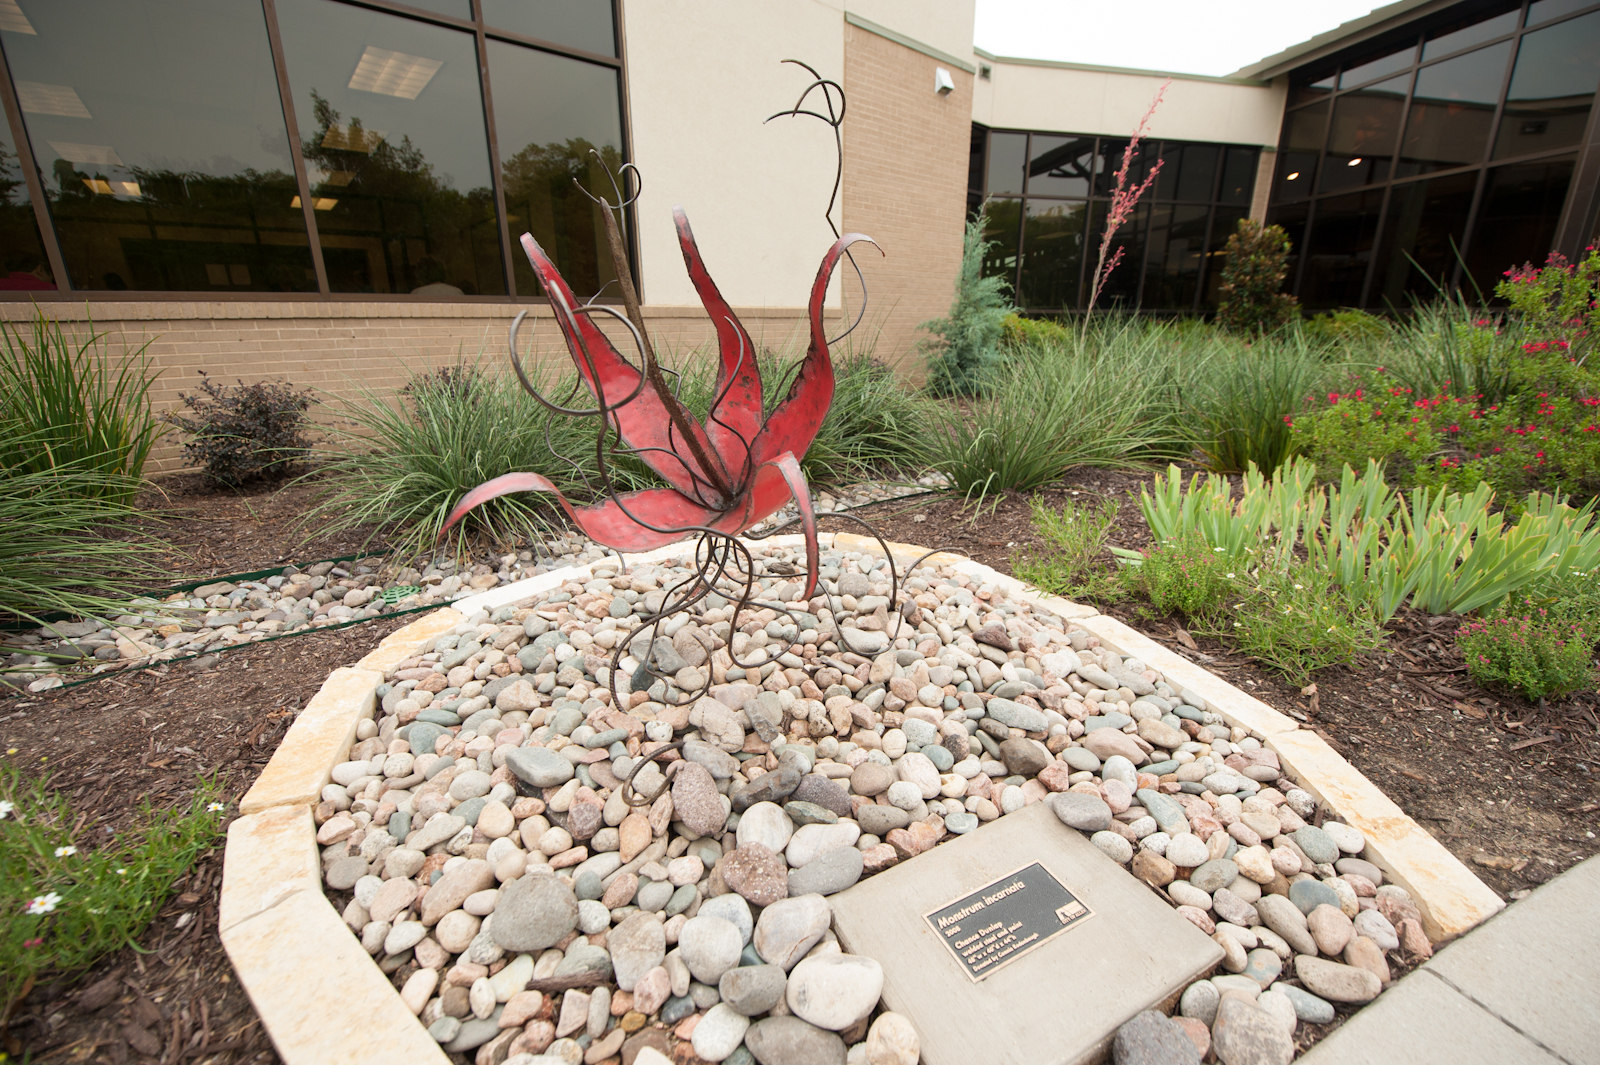 Monstrum Incarnata, by Chance Dunlap, is a part of Allen's growing public art collection